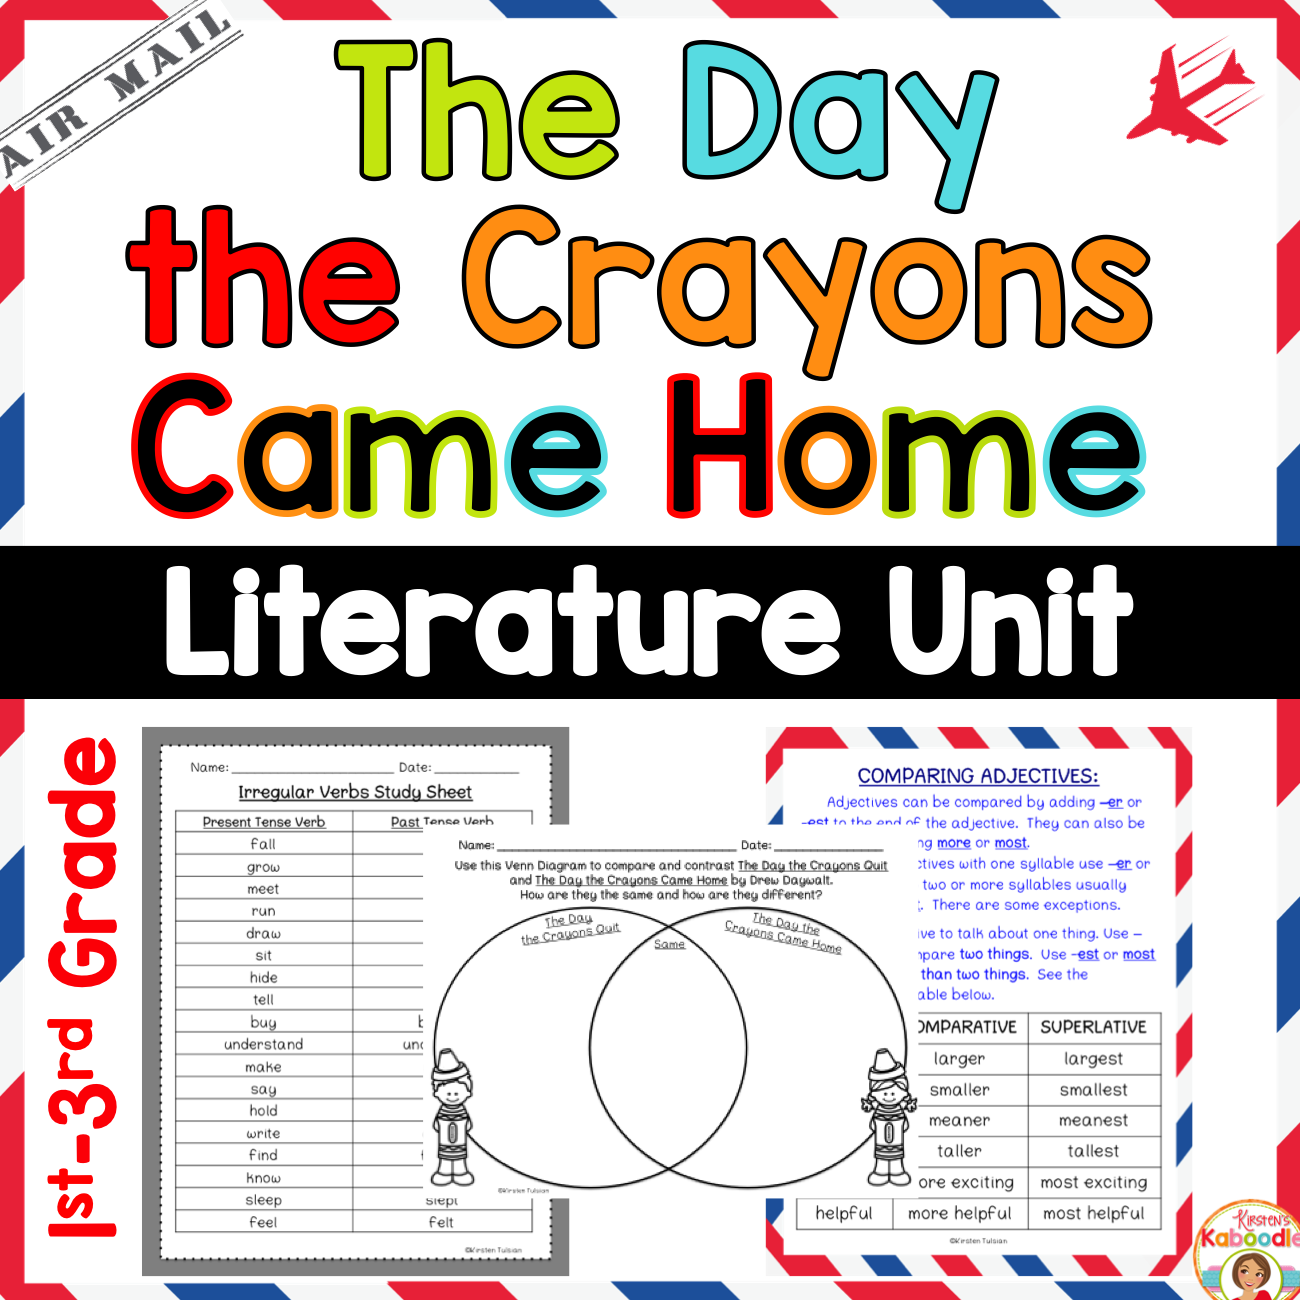 The Day the Crayons Came Home Literature Unit